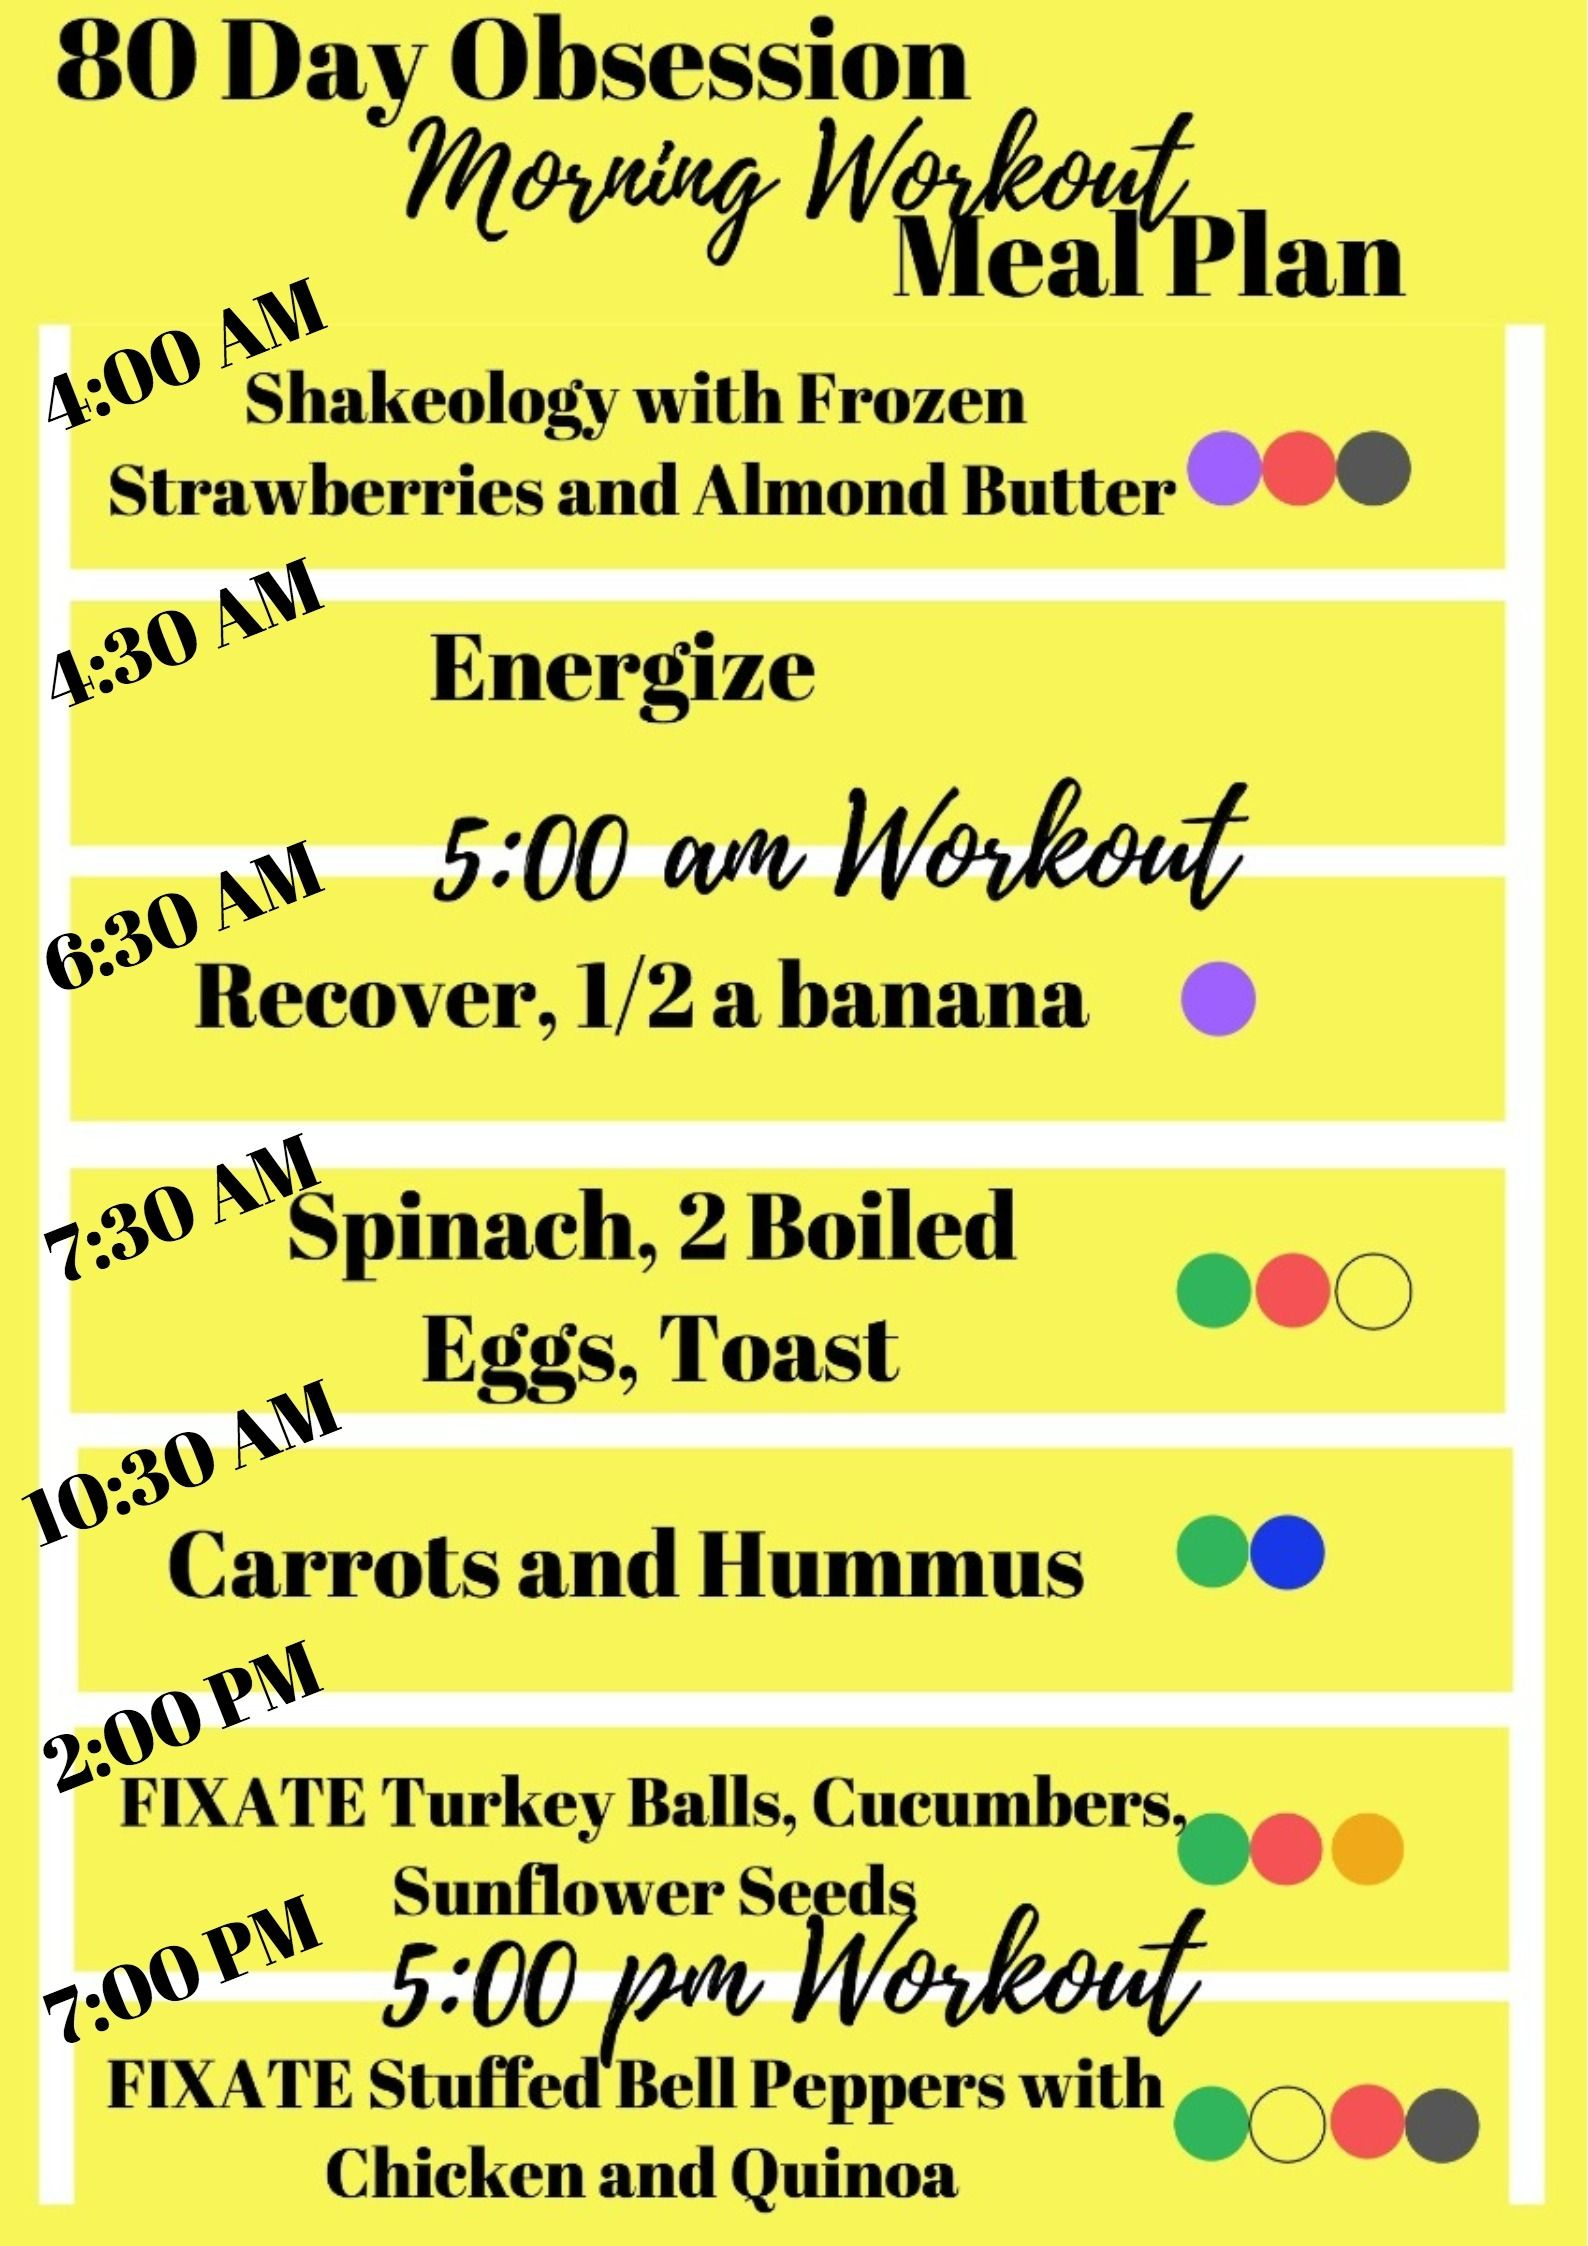 80 Day Obsession Meal Plan for MORNING workout while ...